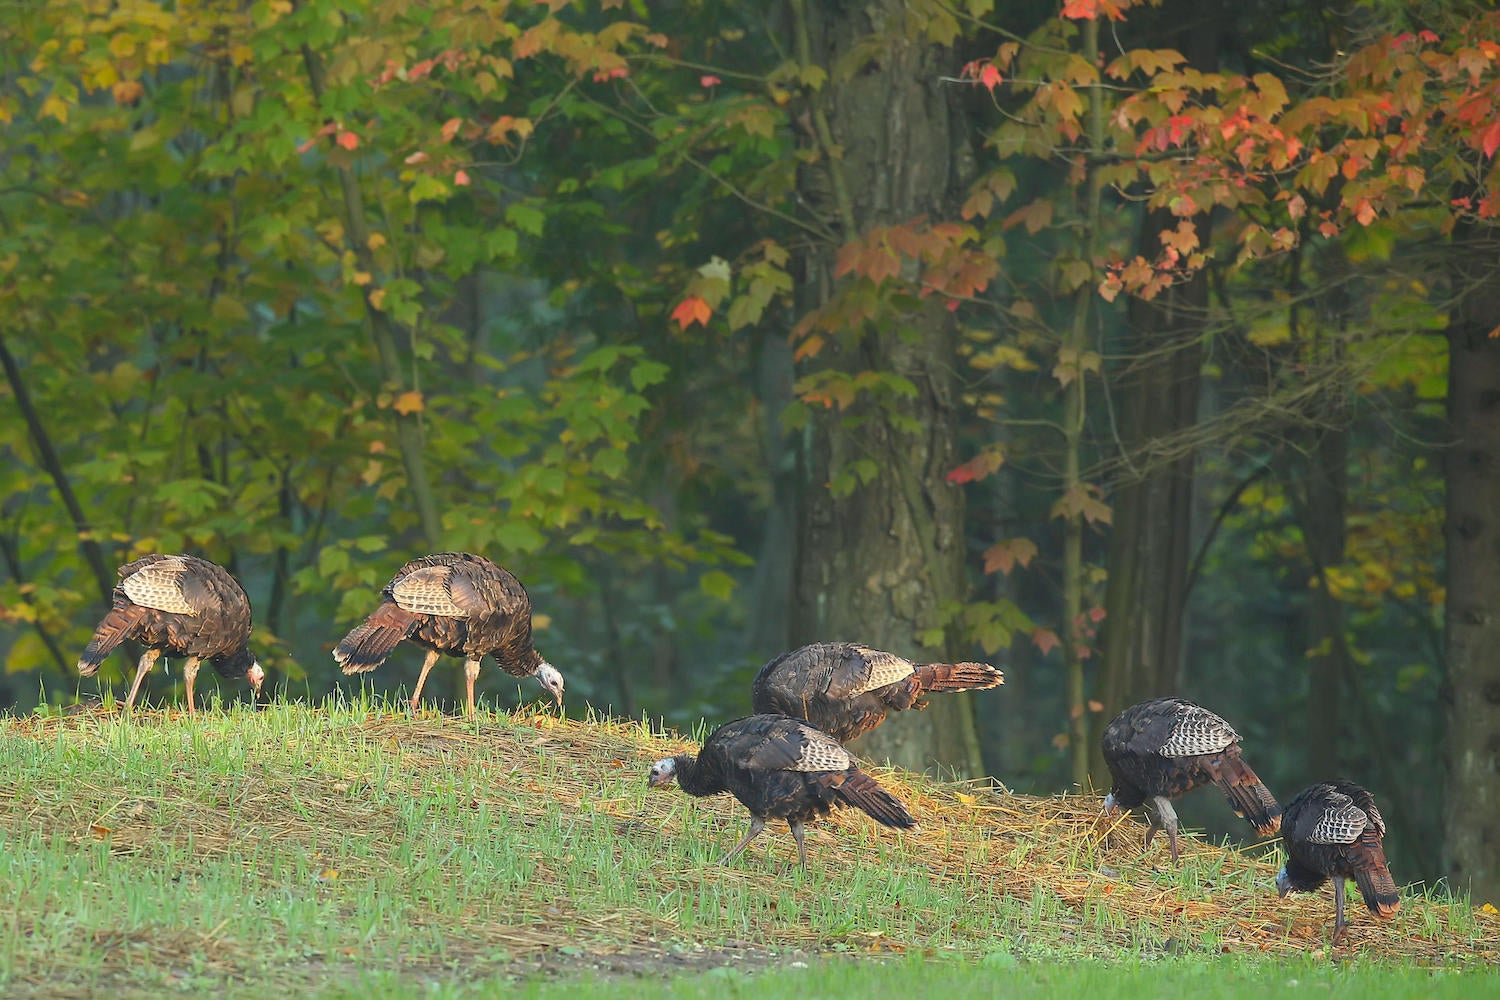 R84DEF Wild Turkey (Meleagris gallopavo) Large game bird. Native American bird.Male Turkey on the edge of a forest